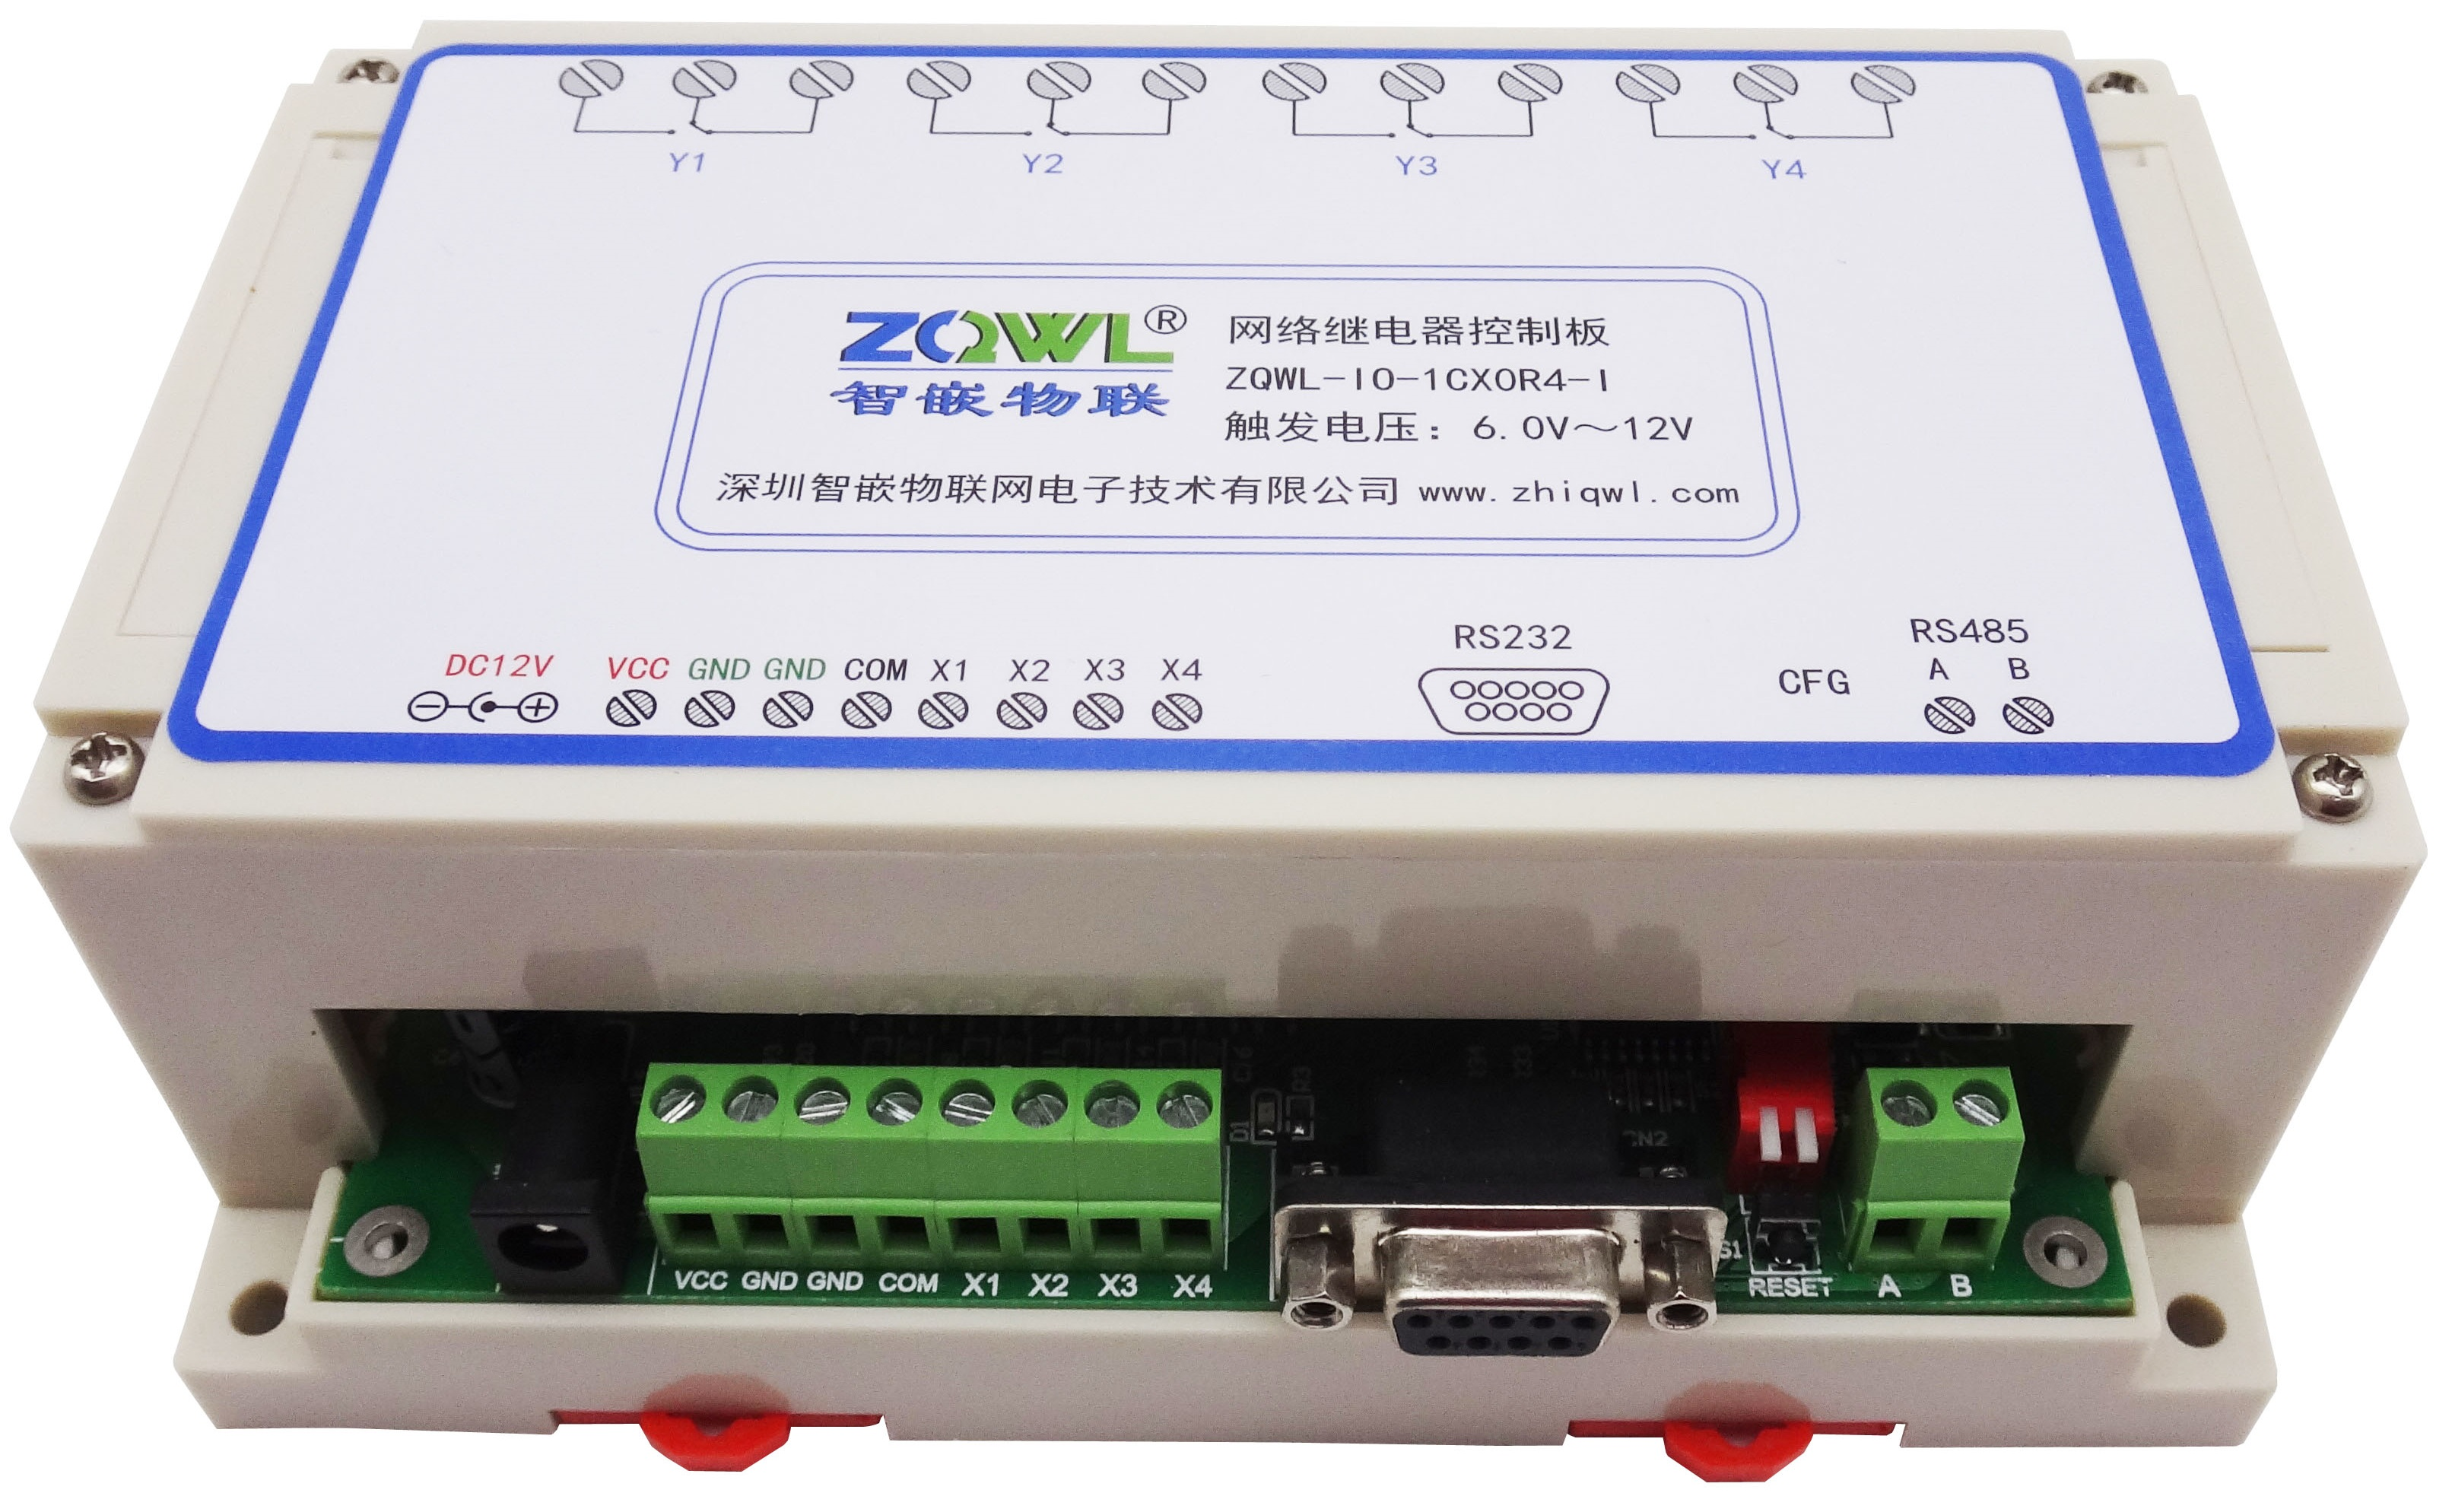 4-Way 4-Channel relay control board/16A/RS485/RS232/Modbus rtu/strip isolation/programmable4-Way 4-Channel relay control board/16A/RS485/RS232/Modbus rtu/strip isolation/programmable